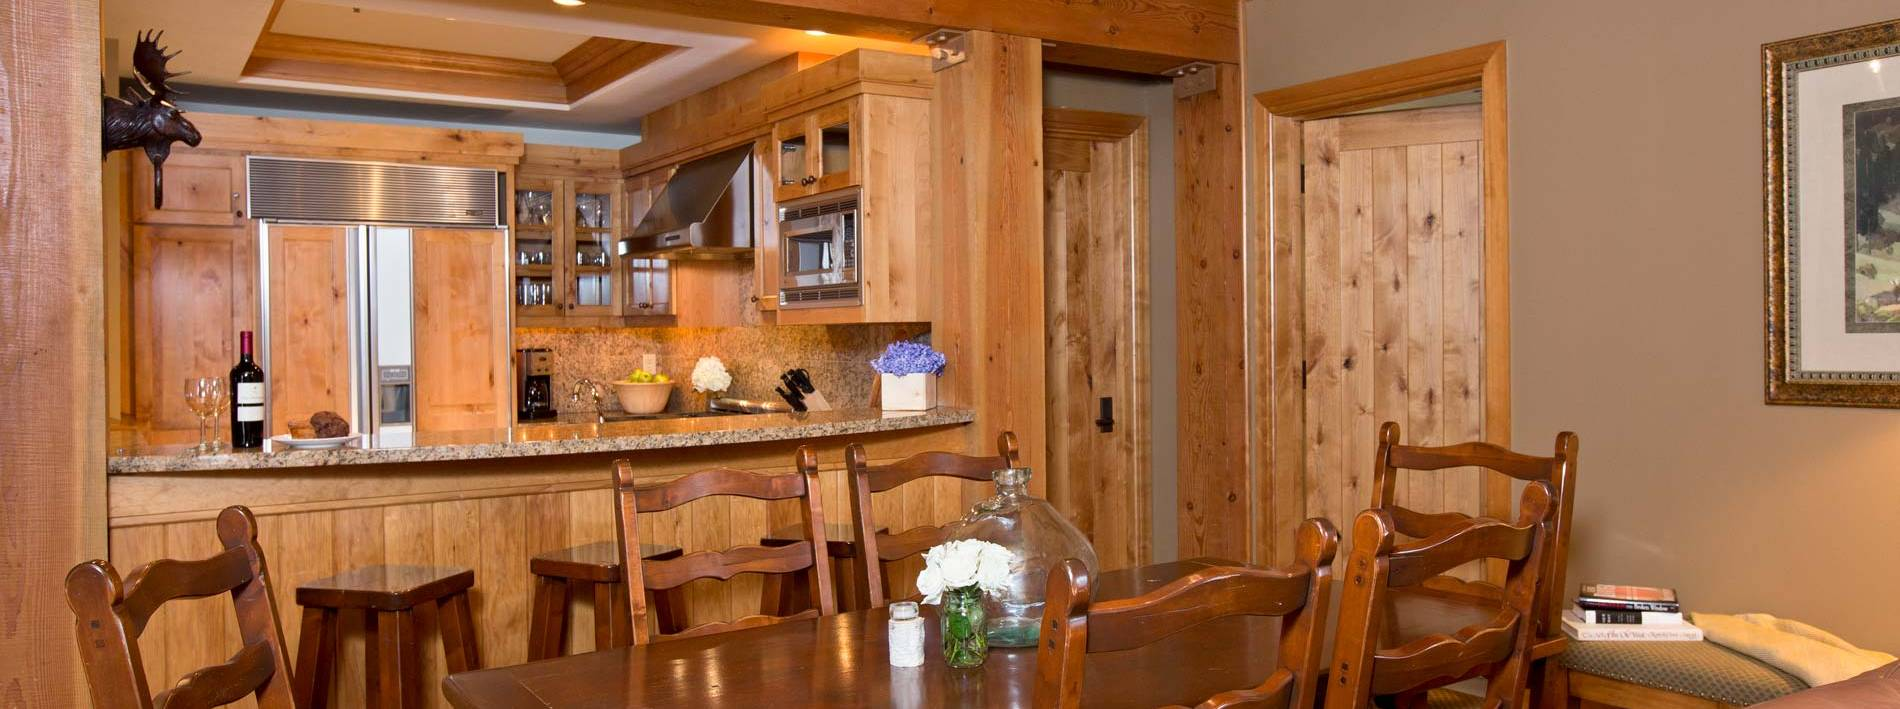 Luxury kitchen in this Teton Village private home rental